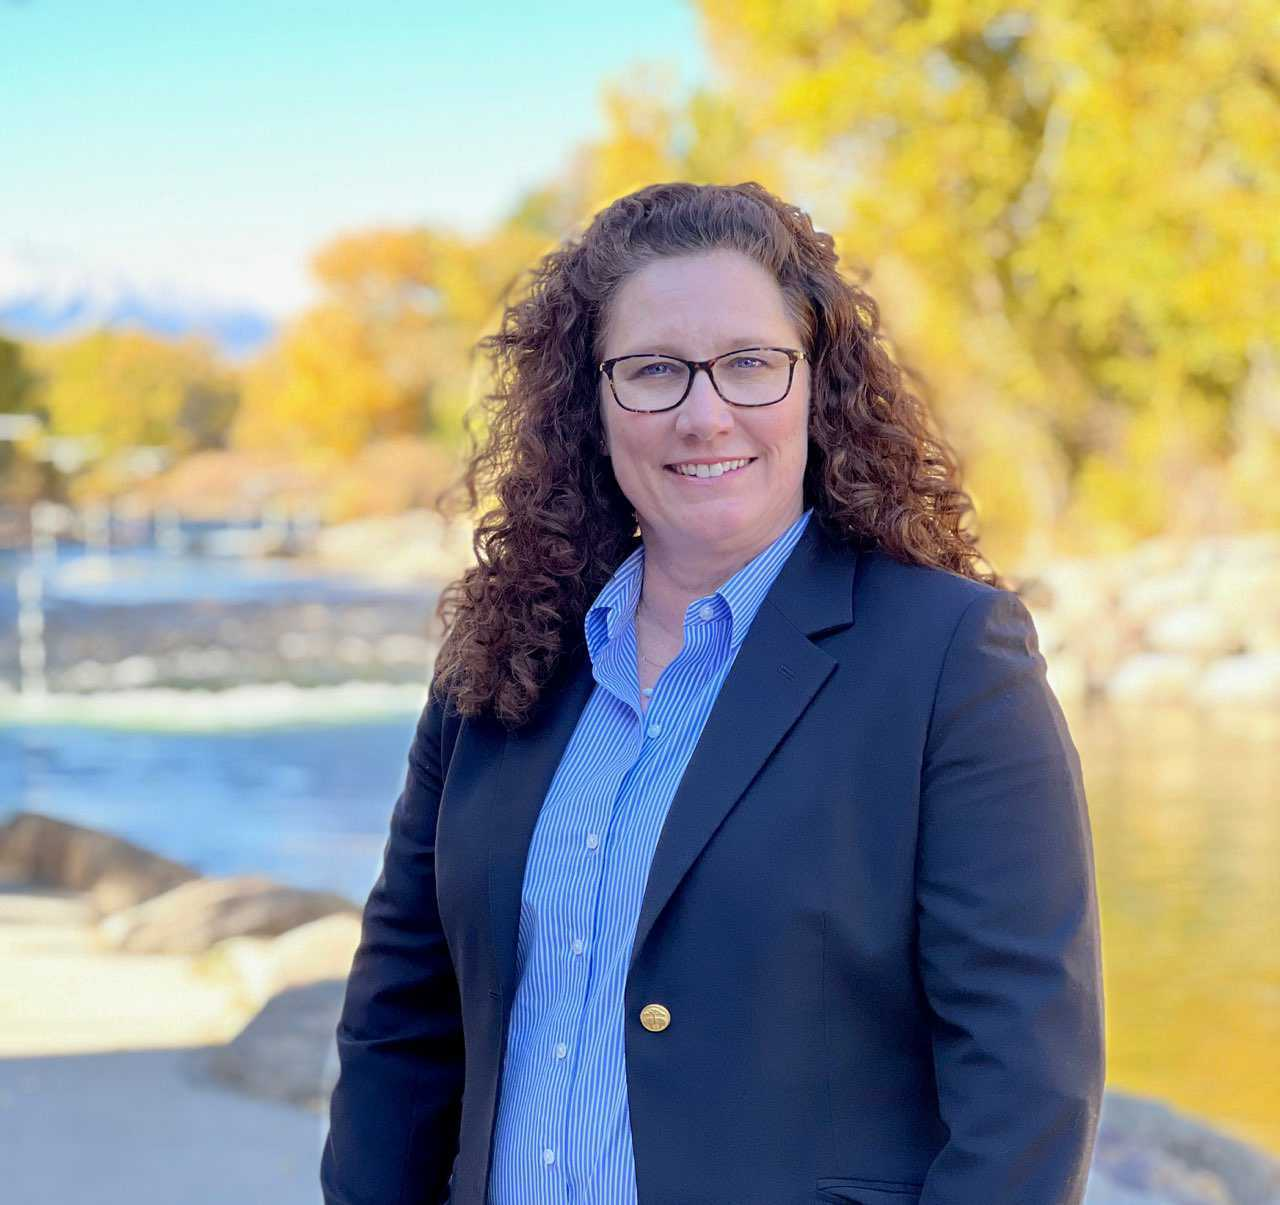 Republican Pam Anderson, former Jefferson County clerk and recorder, and past director of the Colorado County Clerks Association, announced her candidacy for Colorado's Secretary of State in the 2022 midterm election.